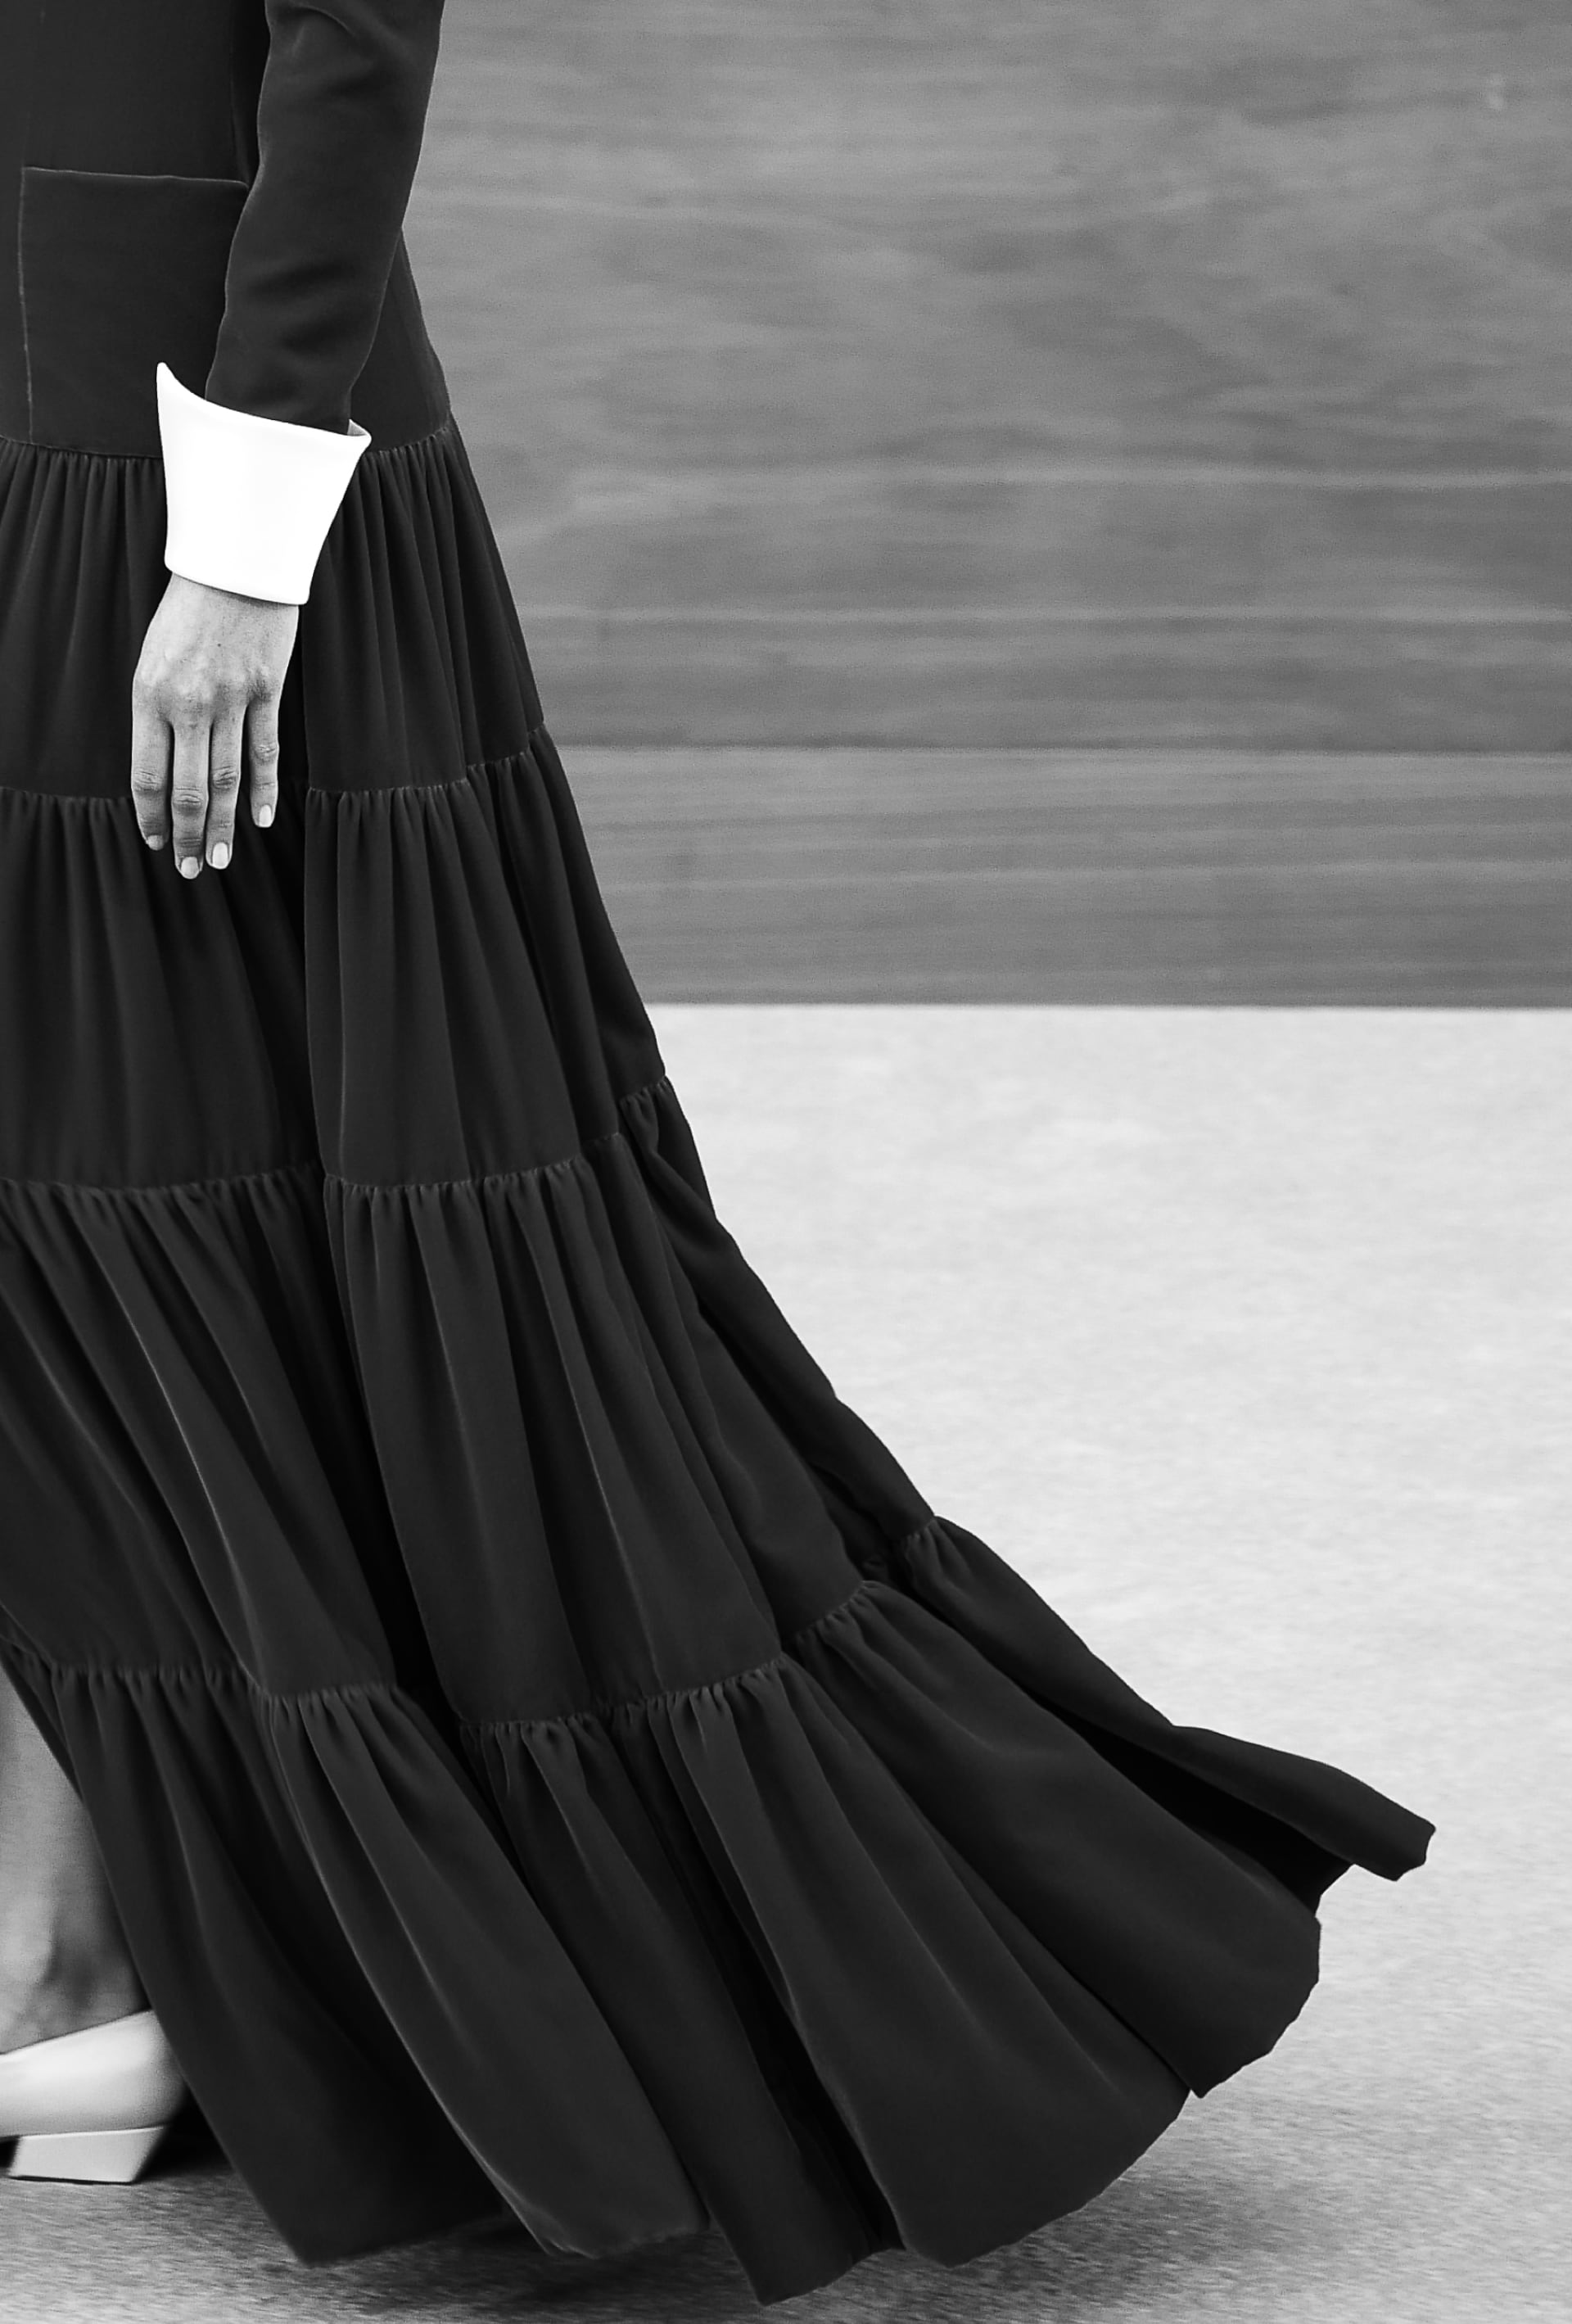 View 3 - Look 52 - Fall-Winter 2019/20 Haute-Couture - see full sized version